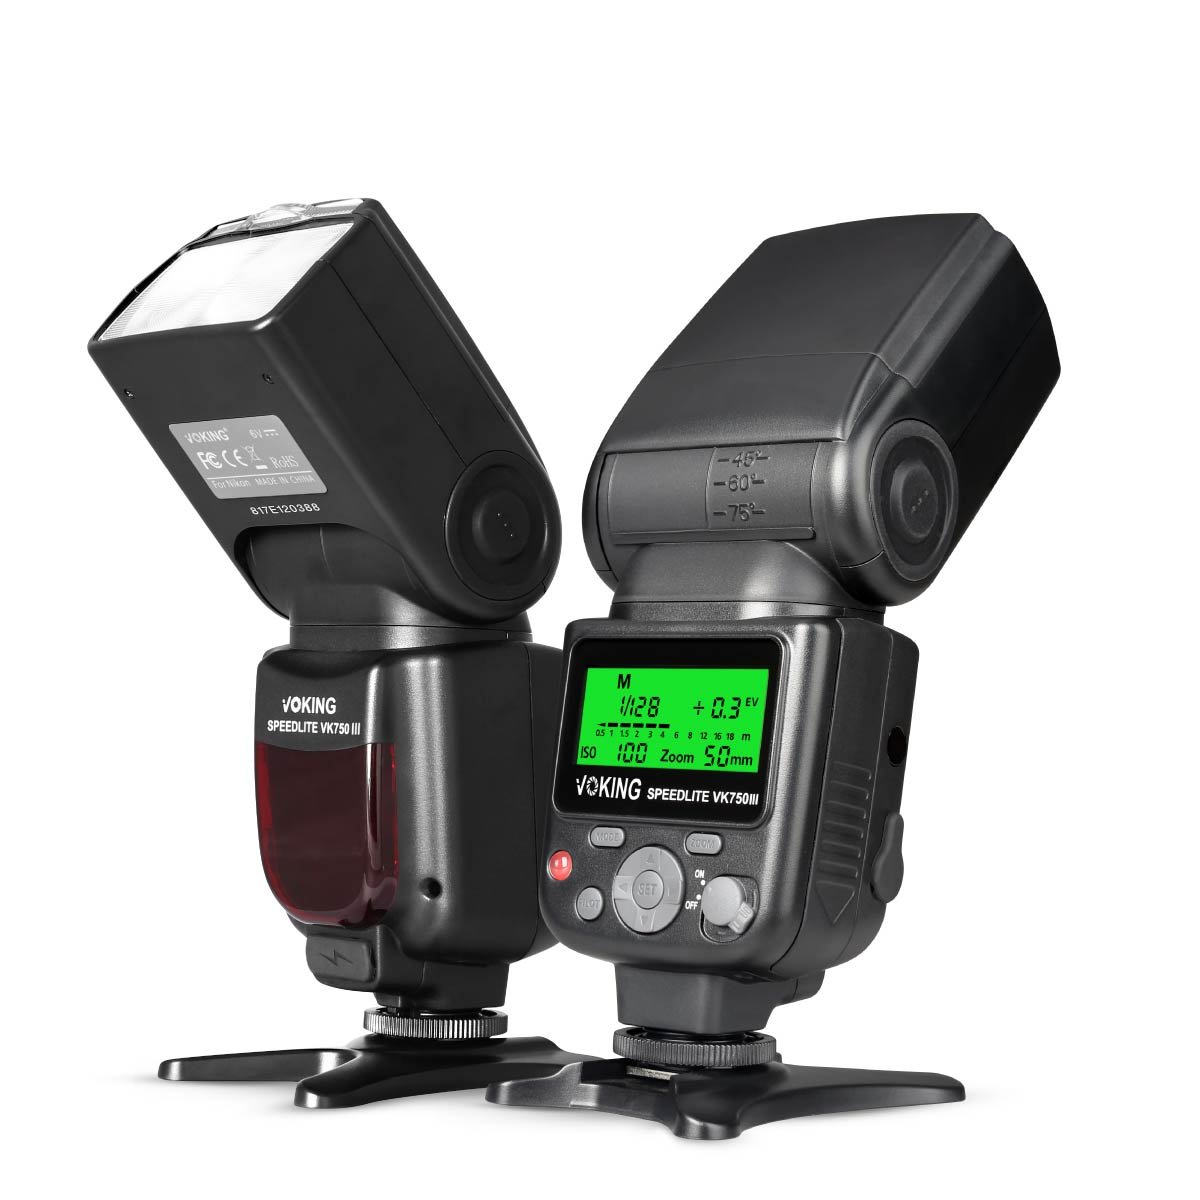 Voking VK750III Remote TTL Camera Flash Speedlite with LCD Display for Nikon D3400 D3300 D3200 D5600 D850 D750 D7200 D5300 D5500 D500 D7100 D3100 and Other DSLR Cameras by VOKING